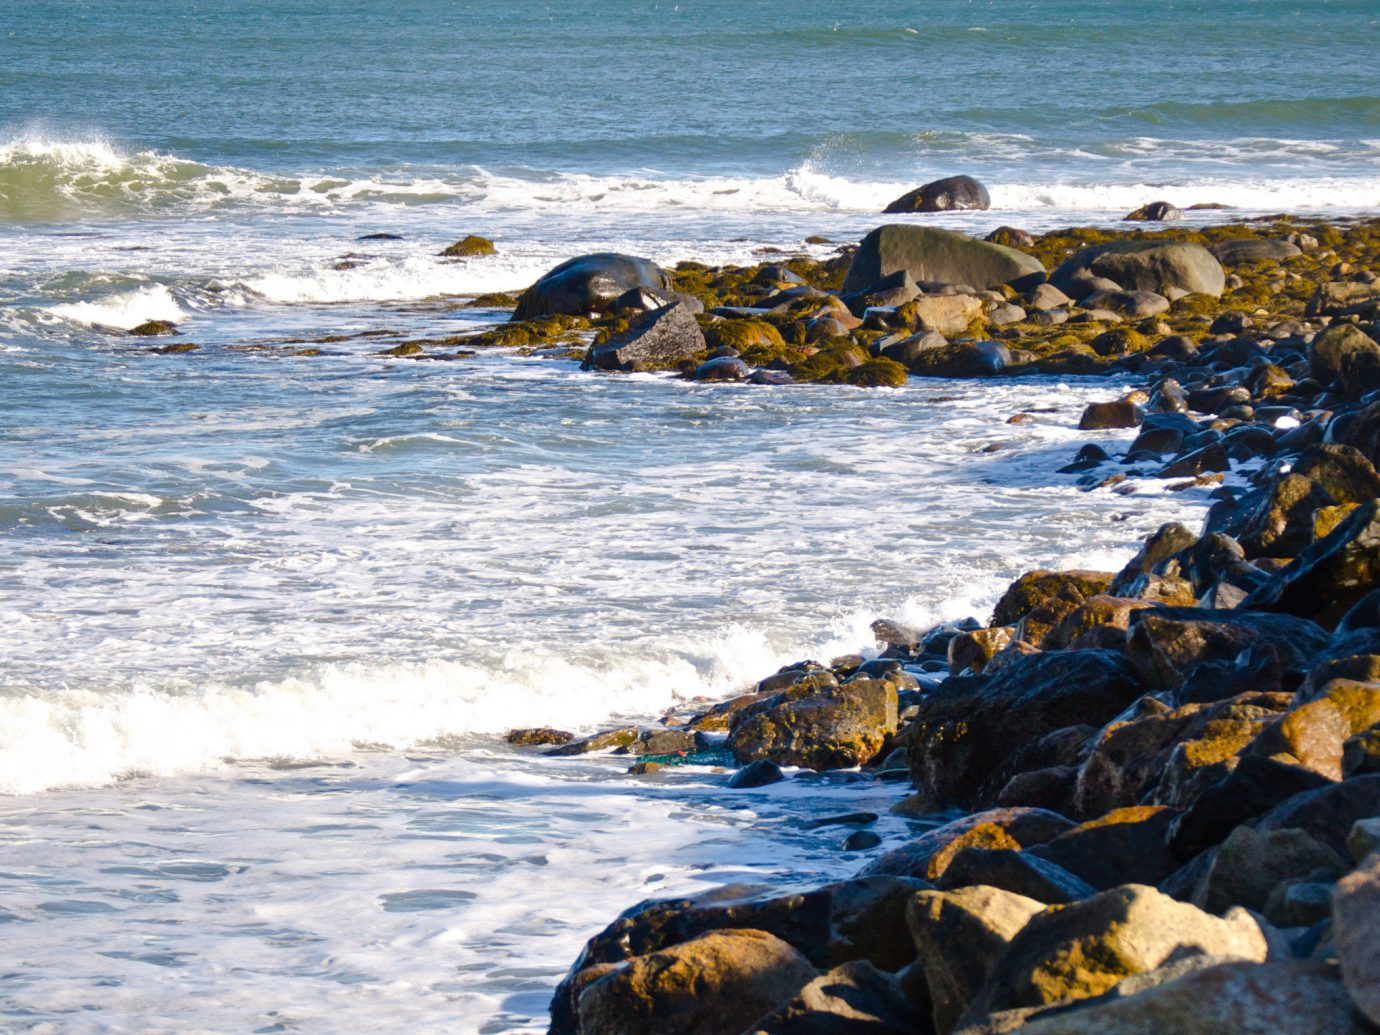 sky water outdoor Coast Sea shore rock Ocean body of water Beach Nature wave wind wave horizon vacation sand cape bay material cove Sunset promontory sandy